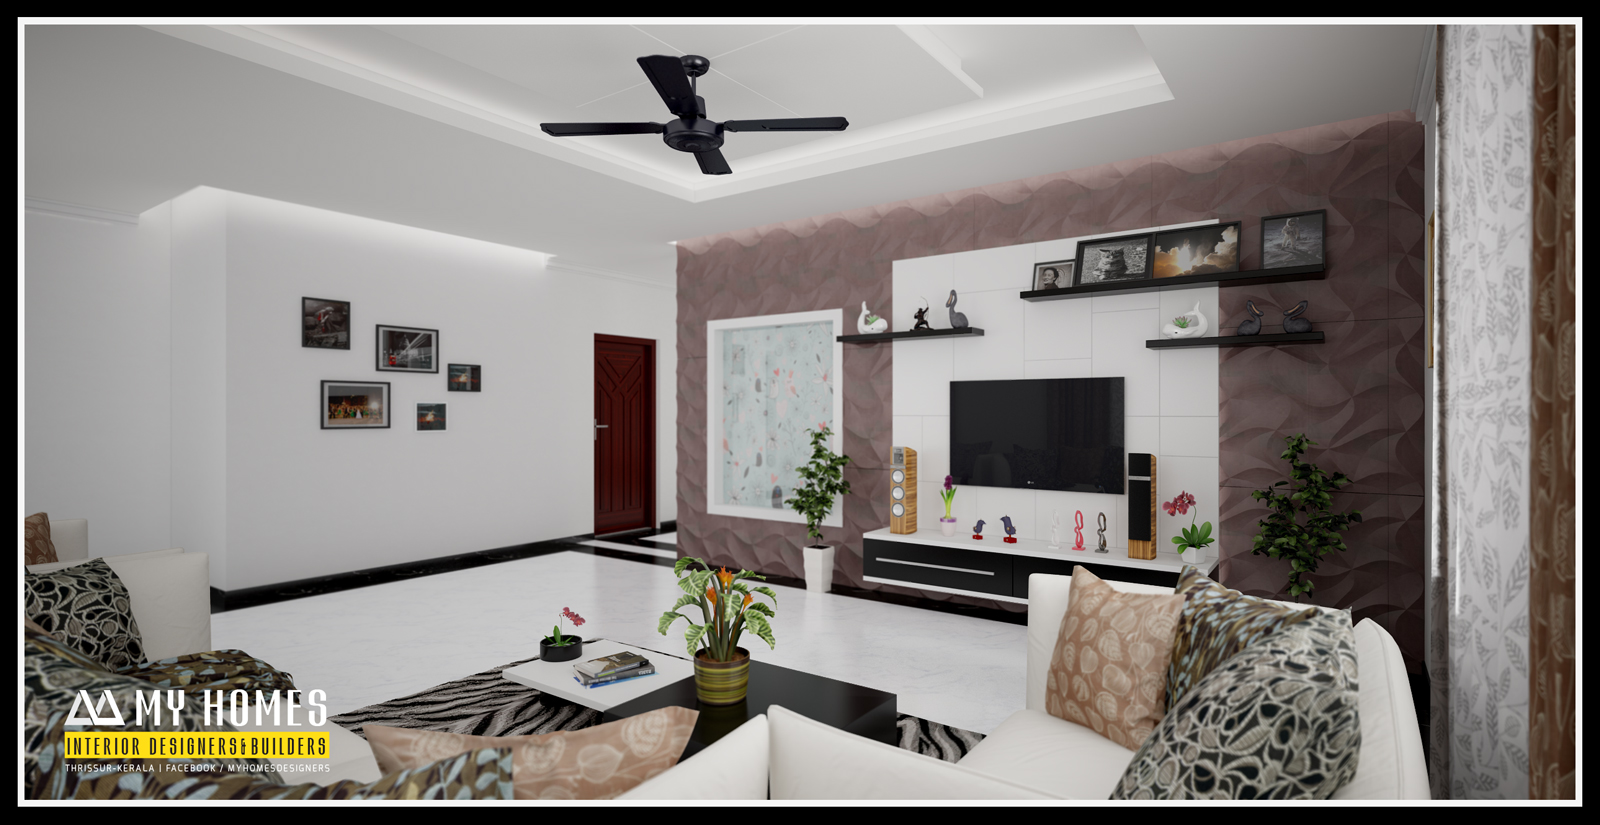 Kerala interior design ideas from designing company thrissur for New room interior design